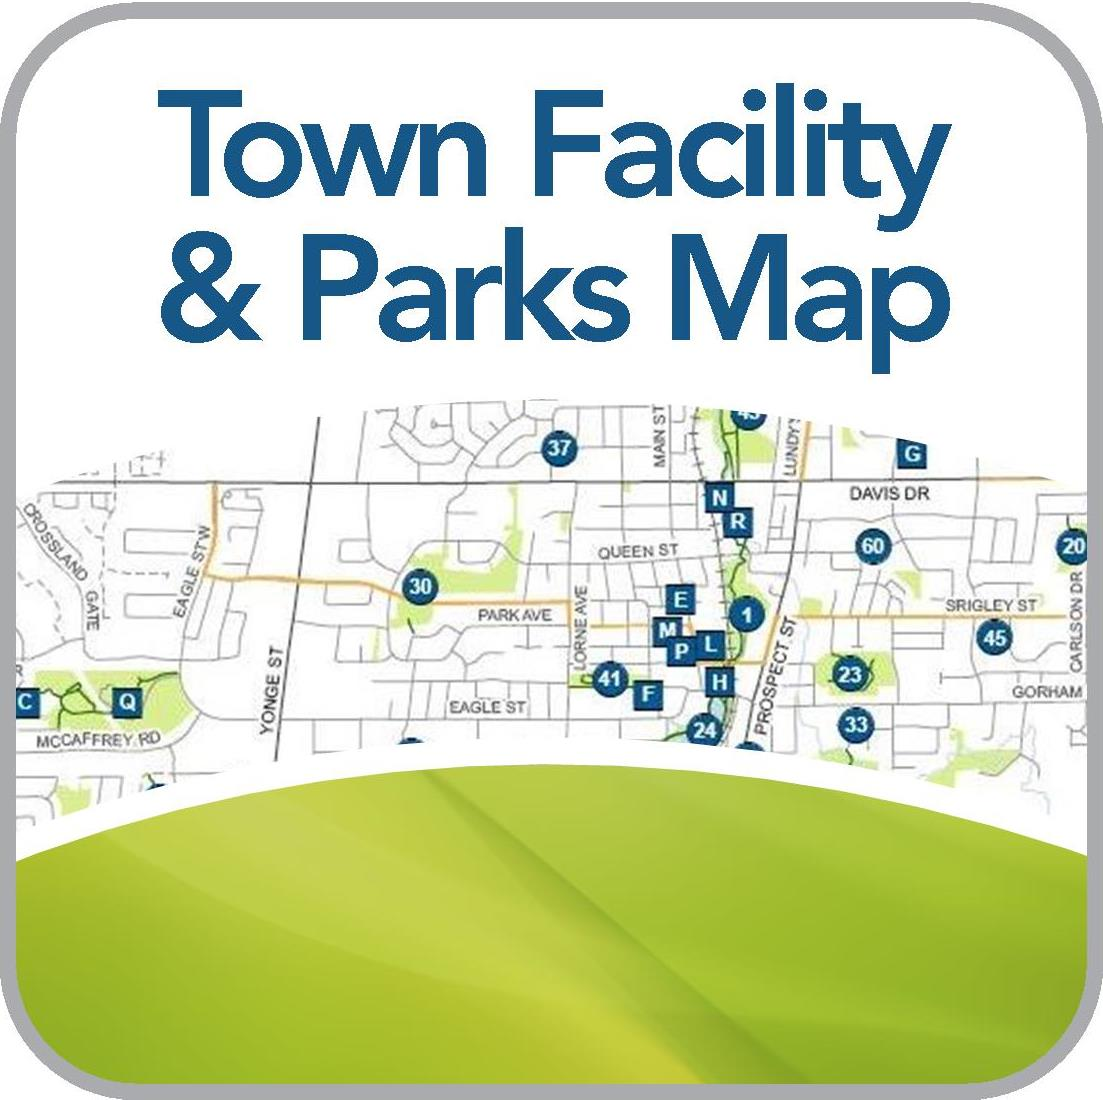 Map of Town Facilities, Parks, and Trails